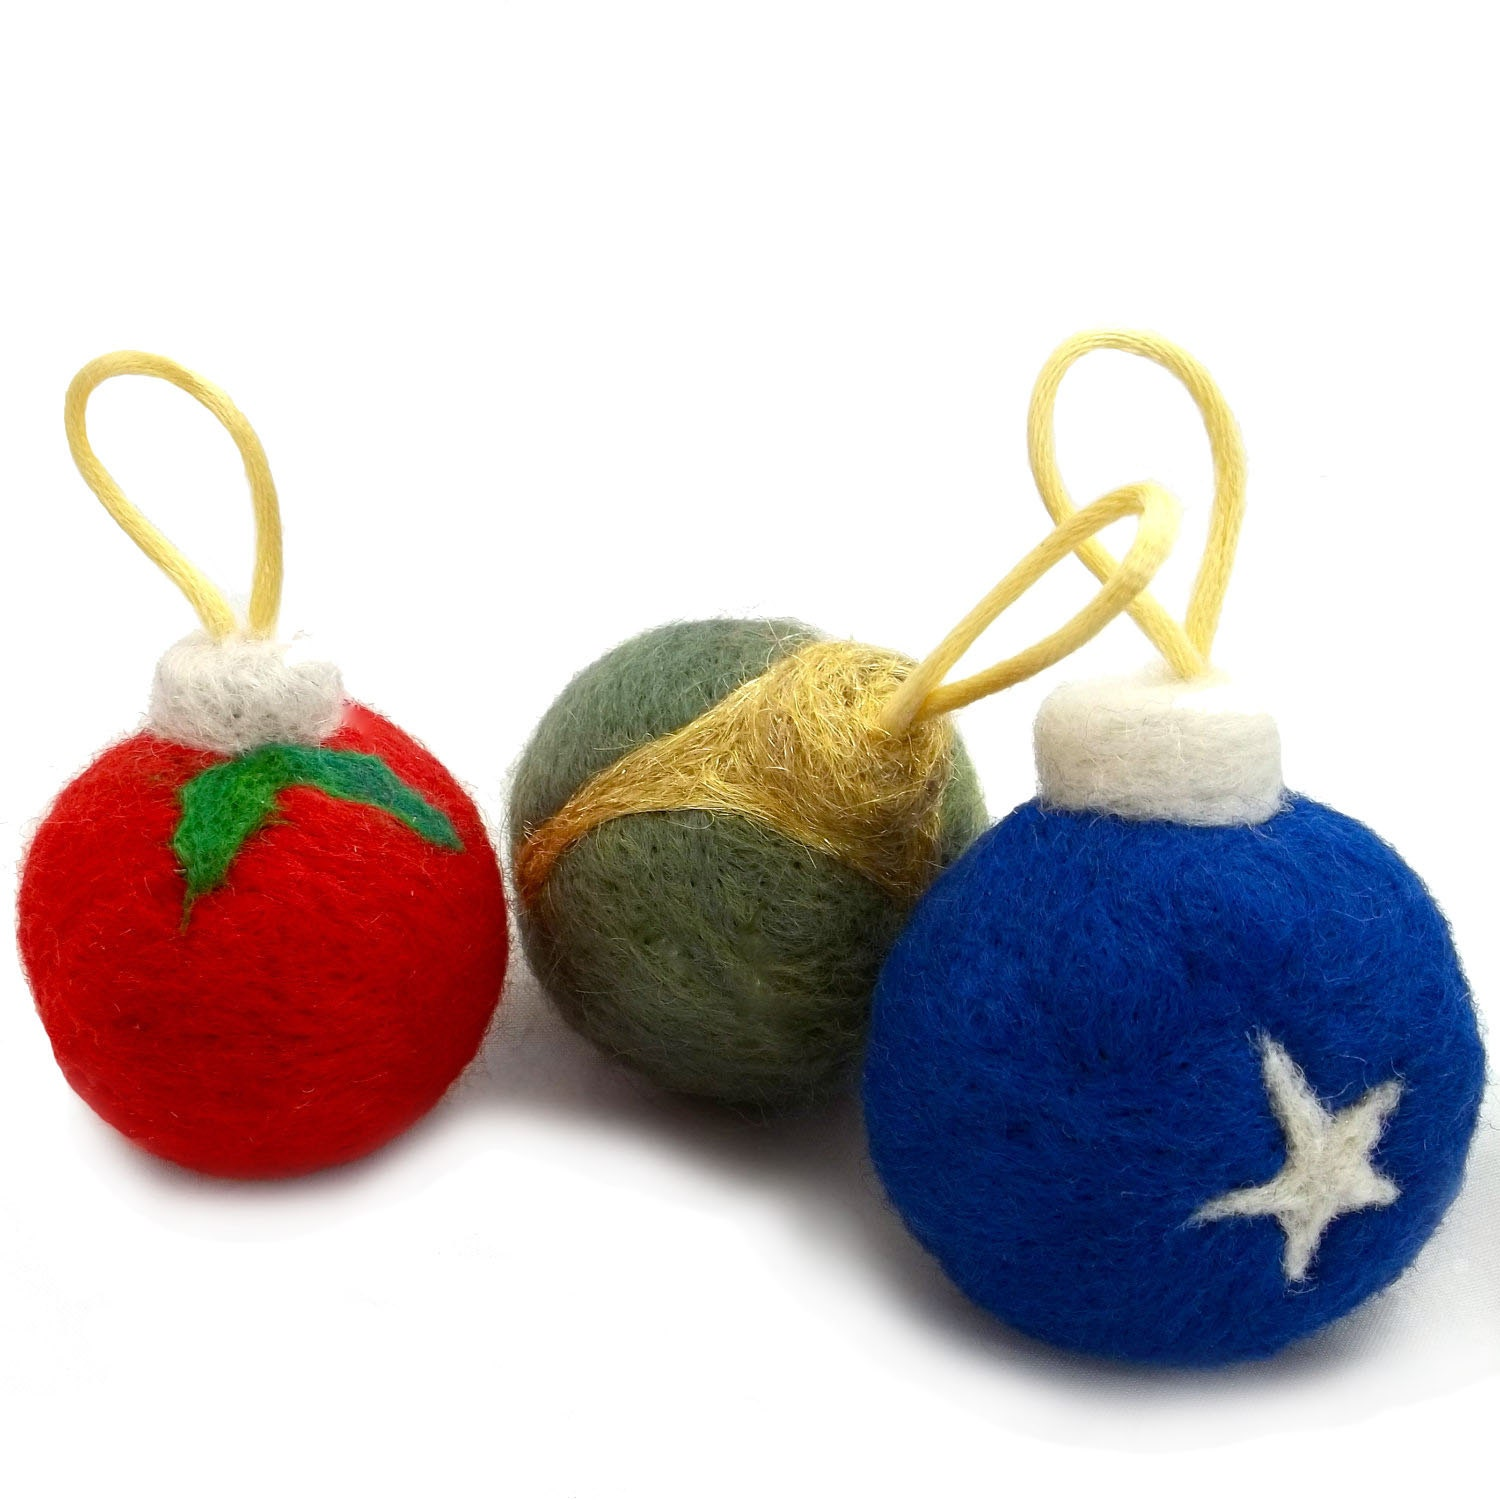 how to change pattern for felting